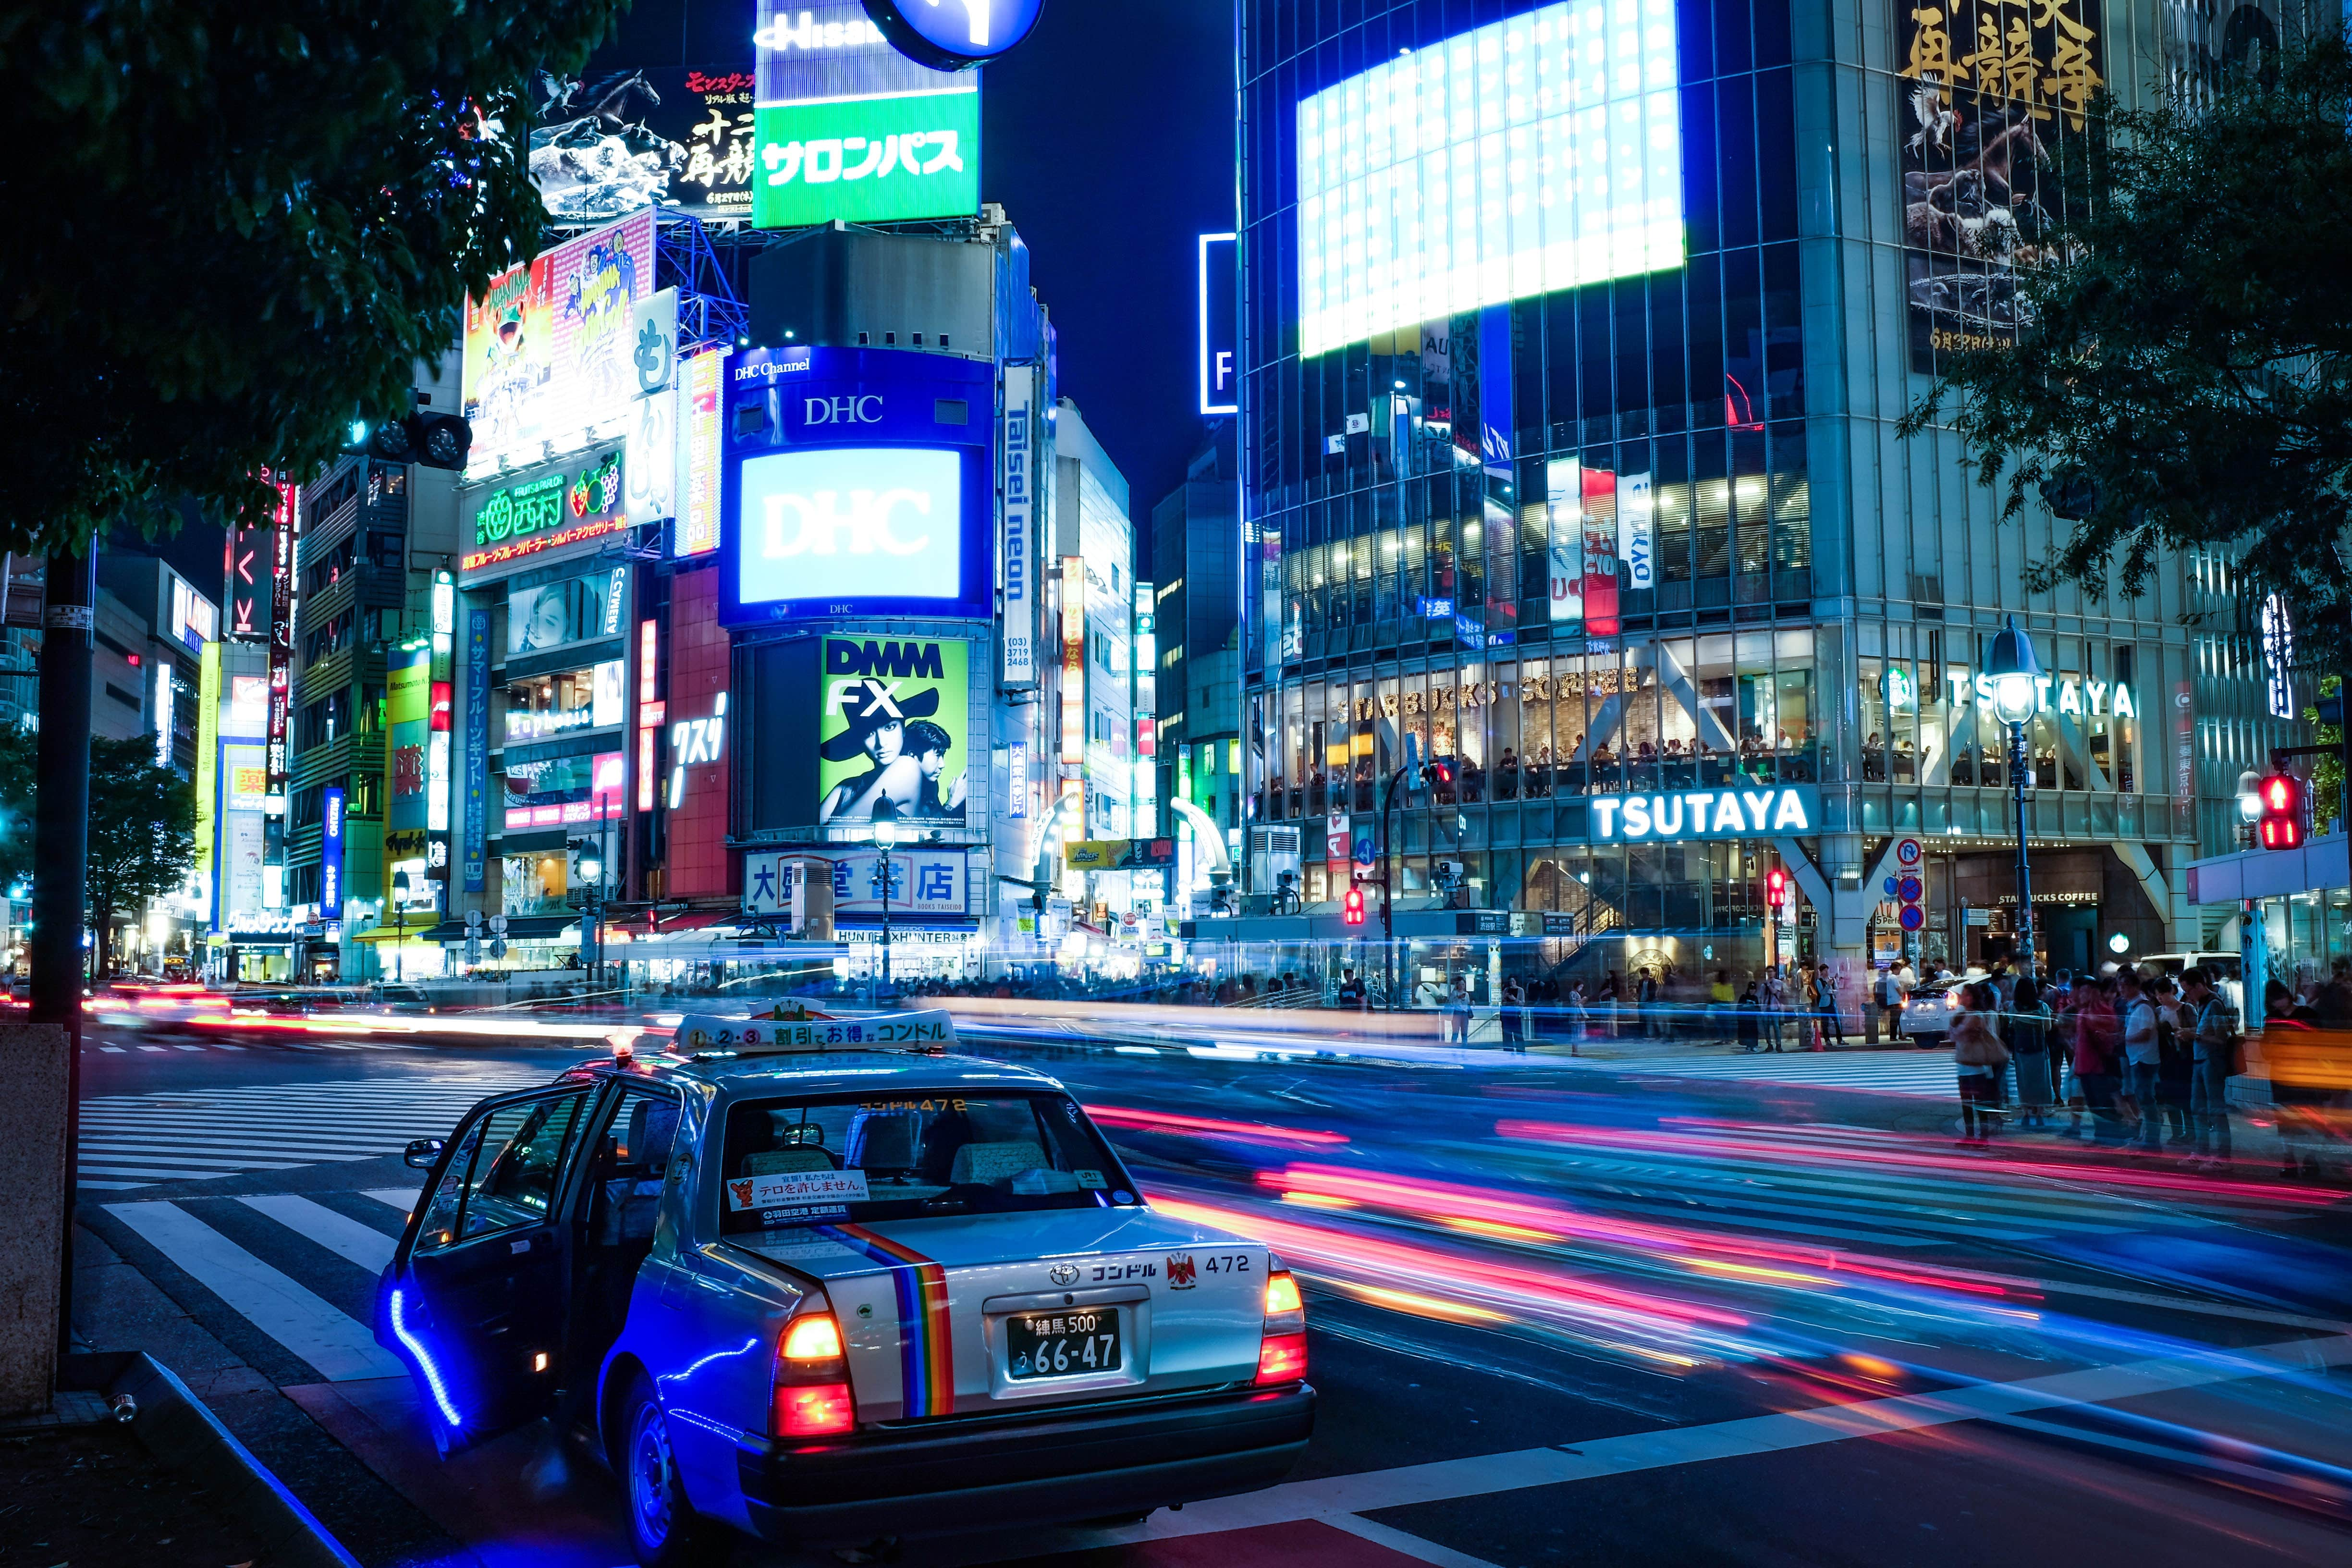 Cars in the streets at night in Japan